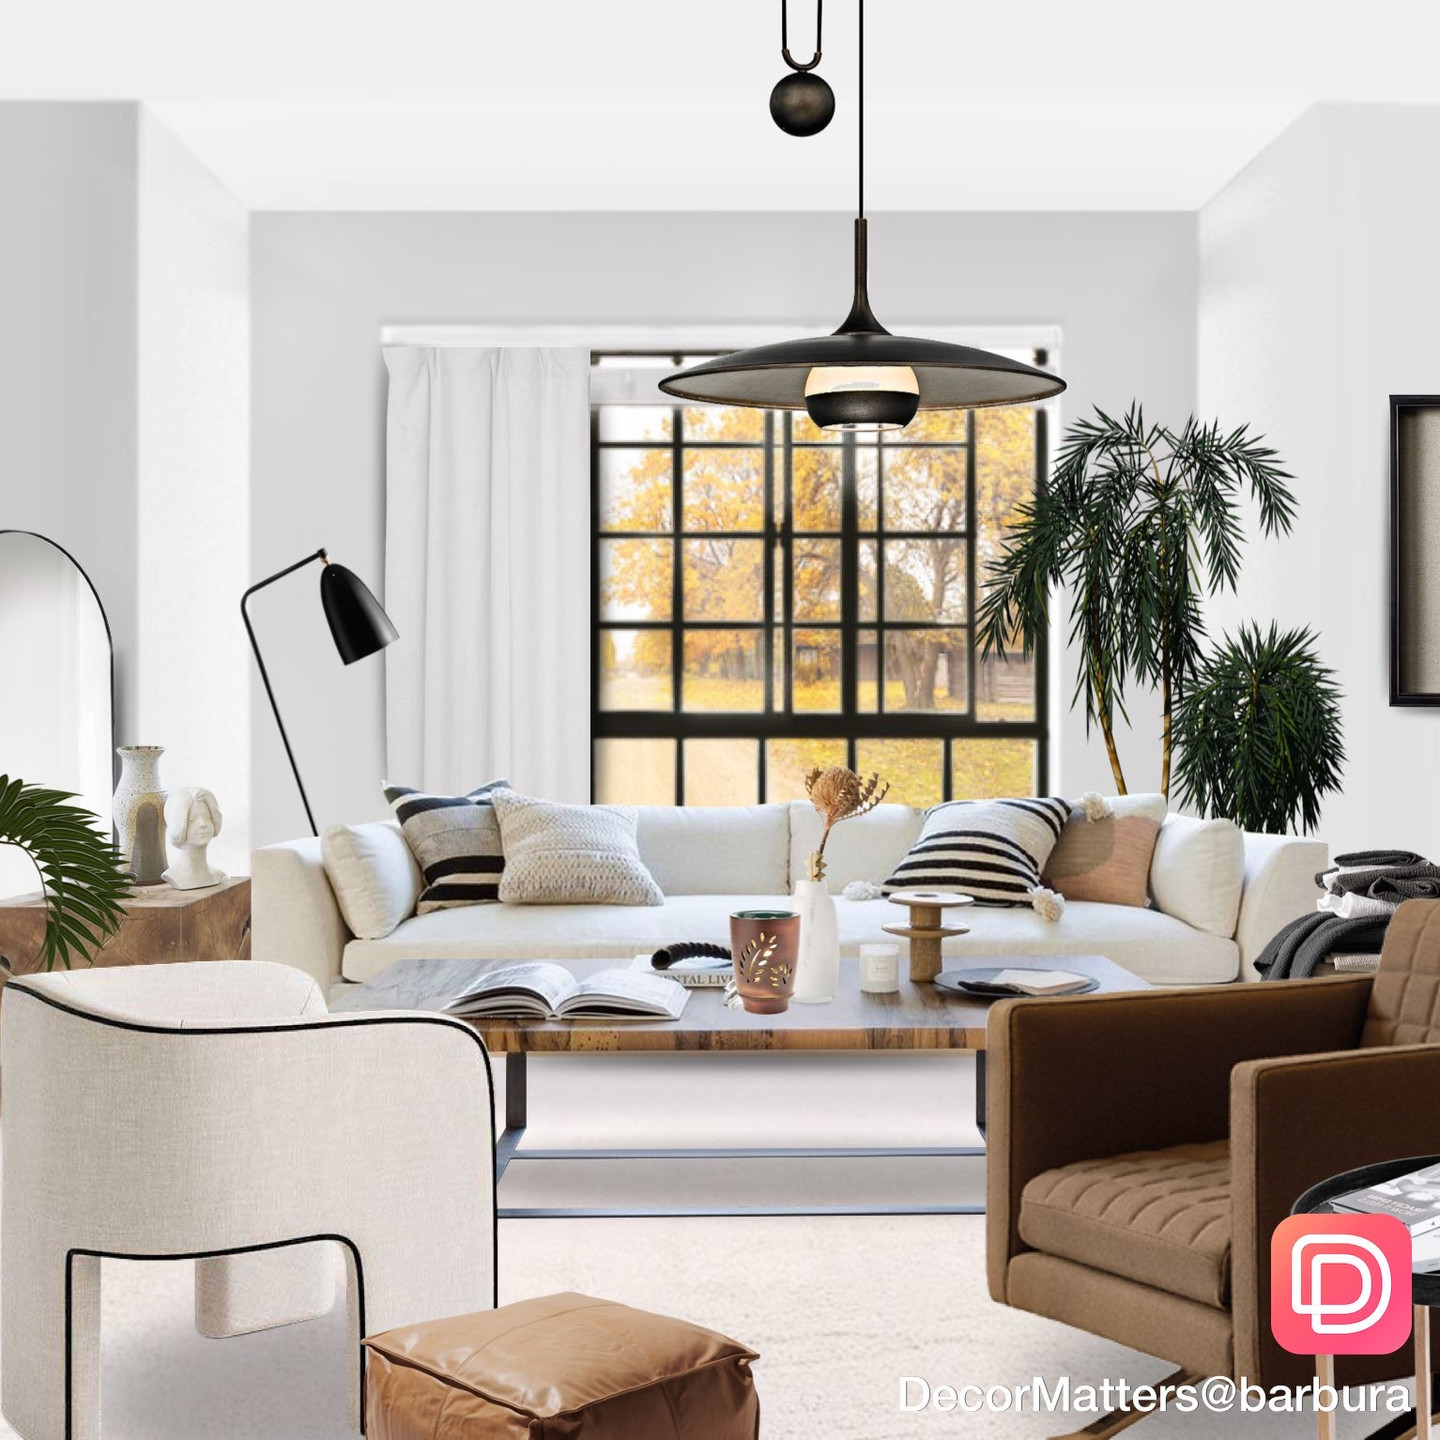 virtual staging of living room designed in DecorMatters app